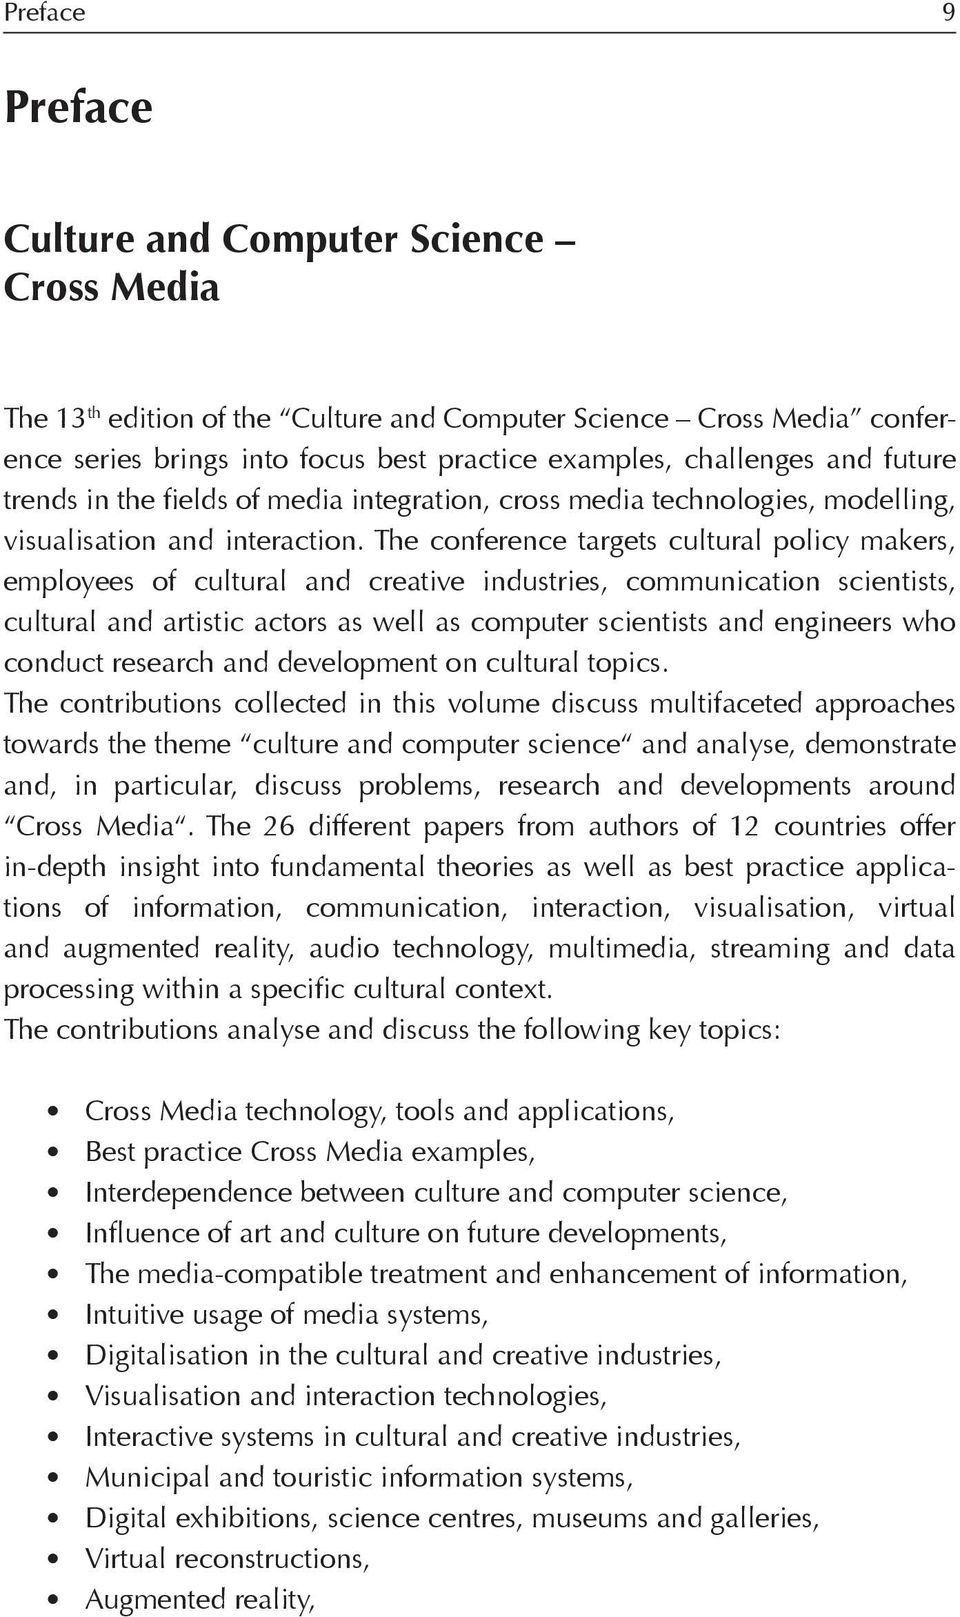 The conference targets cultural policy makers, employees of cultural and creative industries, communication scientists, cultural and artistic actors as well as computer scientists and engineers who